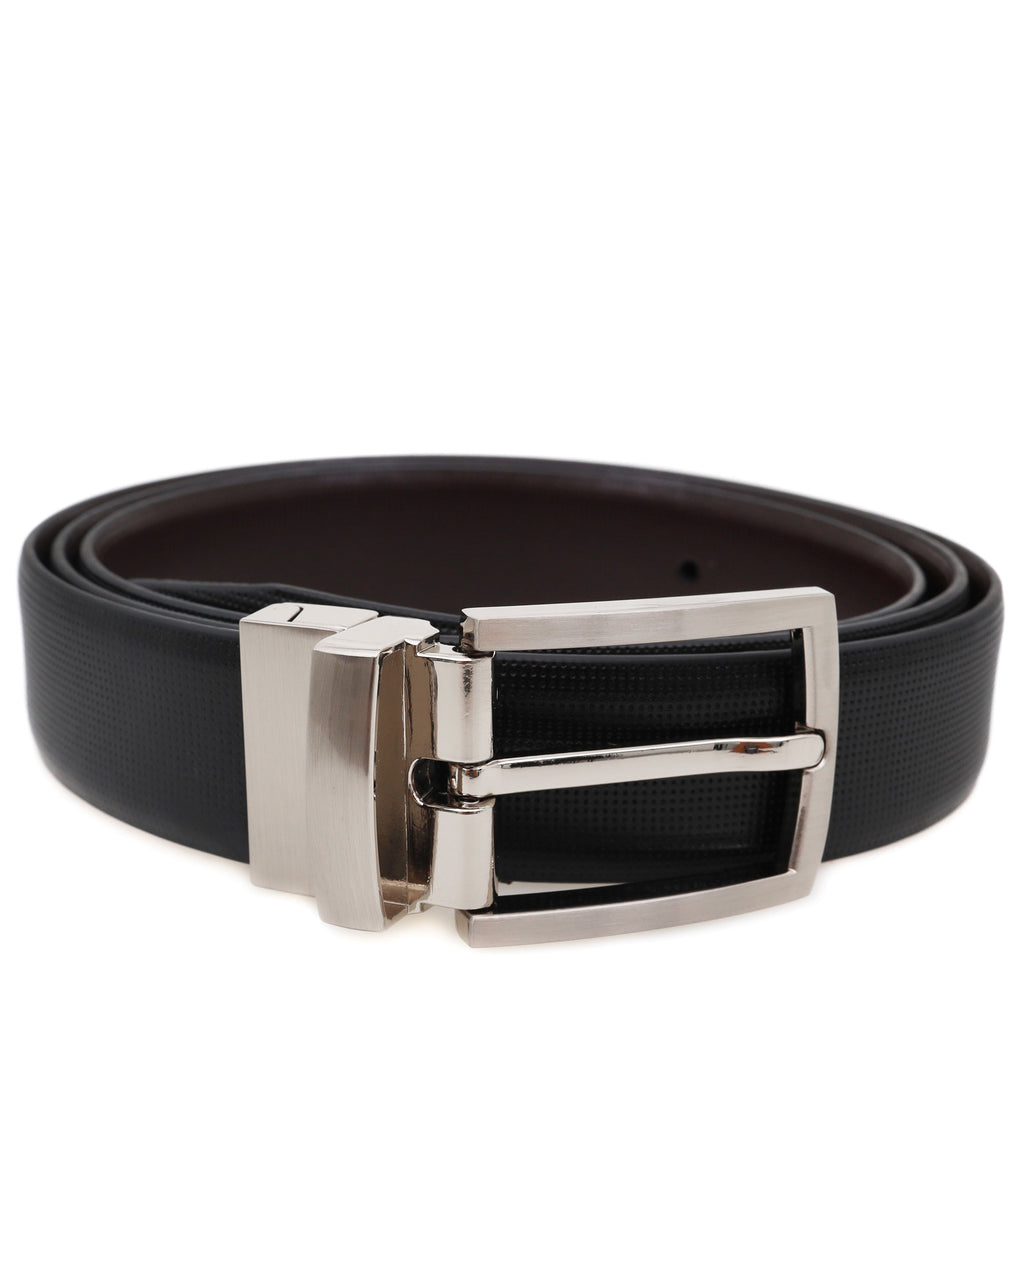 Tomaz Belt NT178 (Black/Brown)